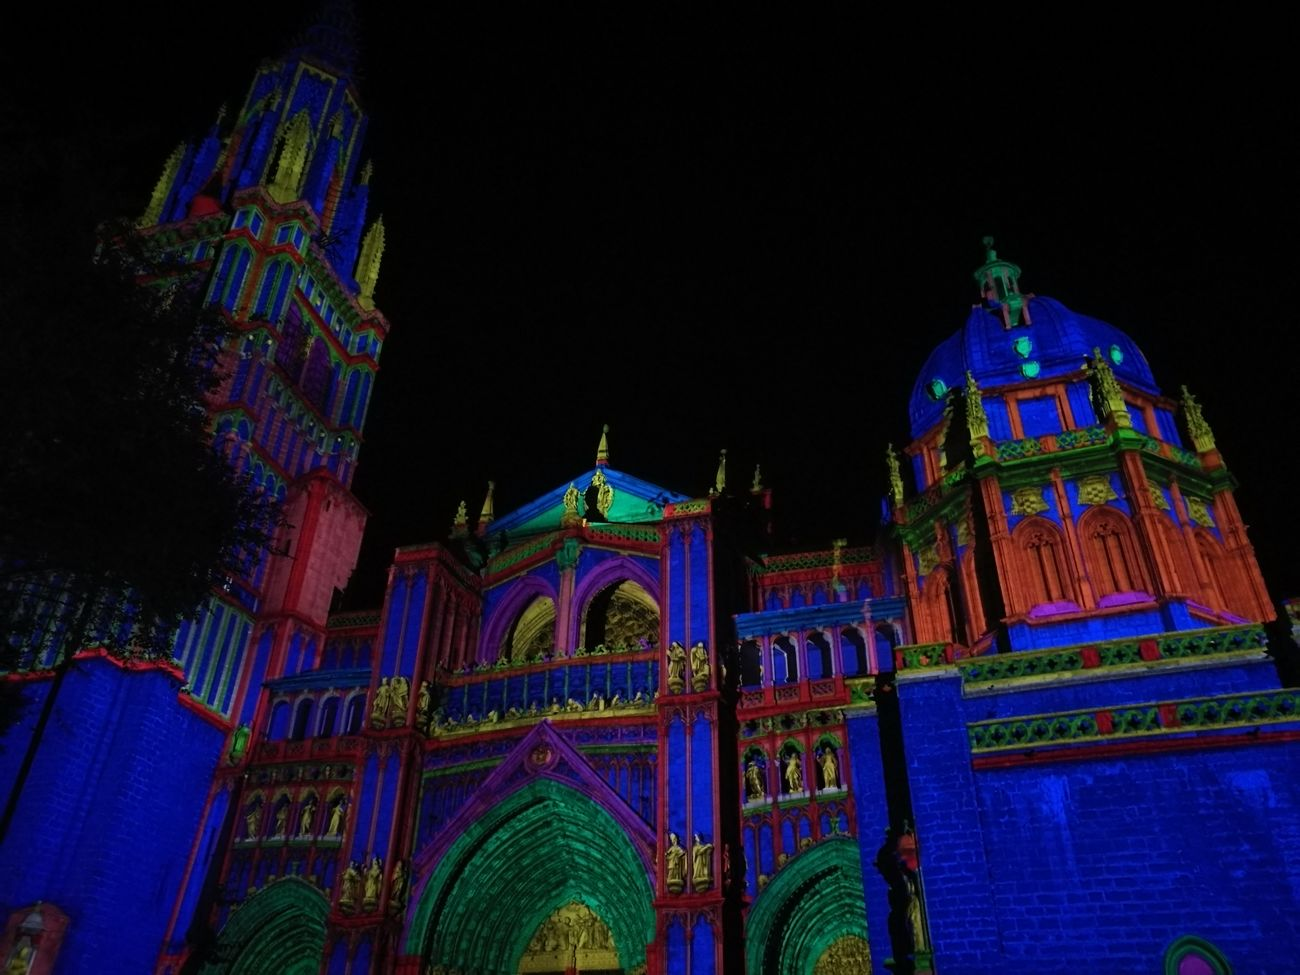 Night Lights Toledo CastillaLaMancha SPAIN Cathedral Blue Red Yellow Green